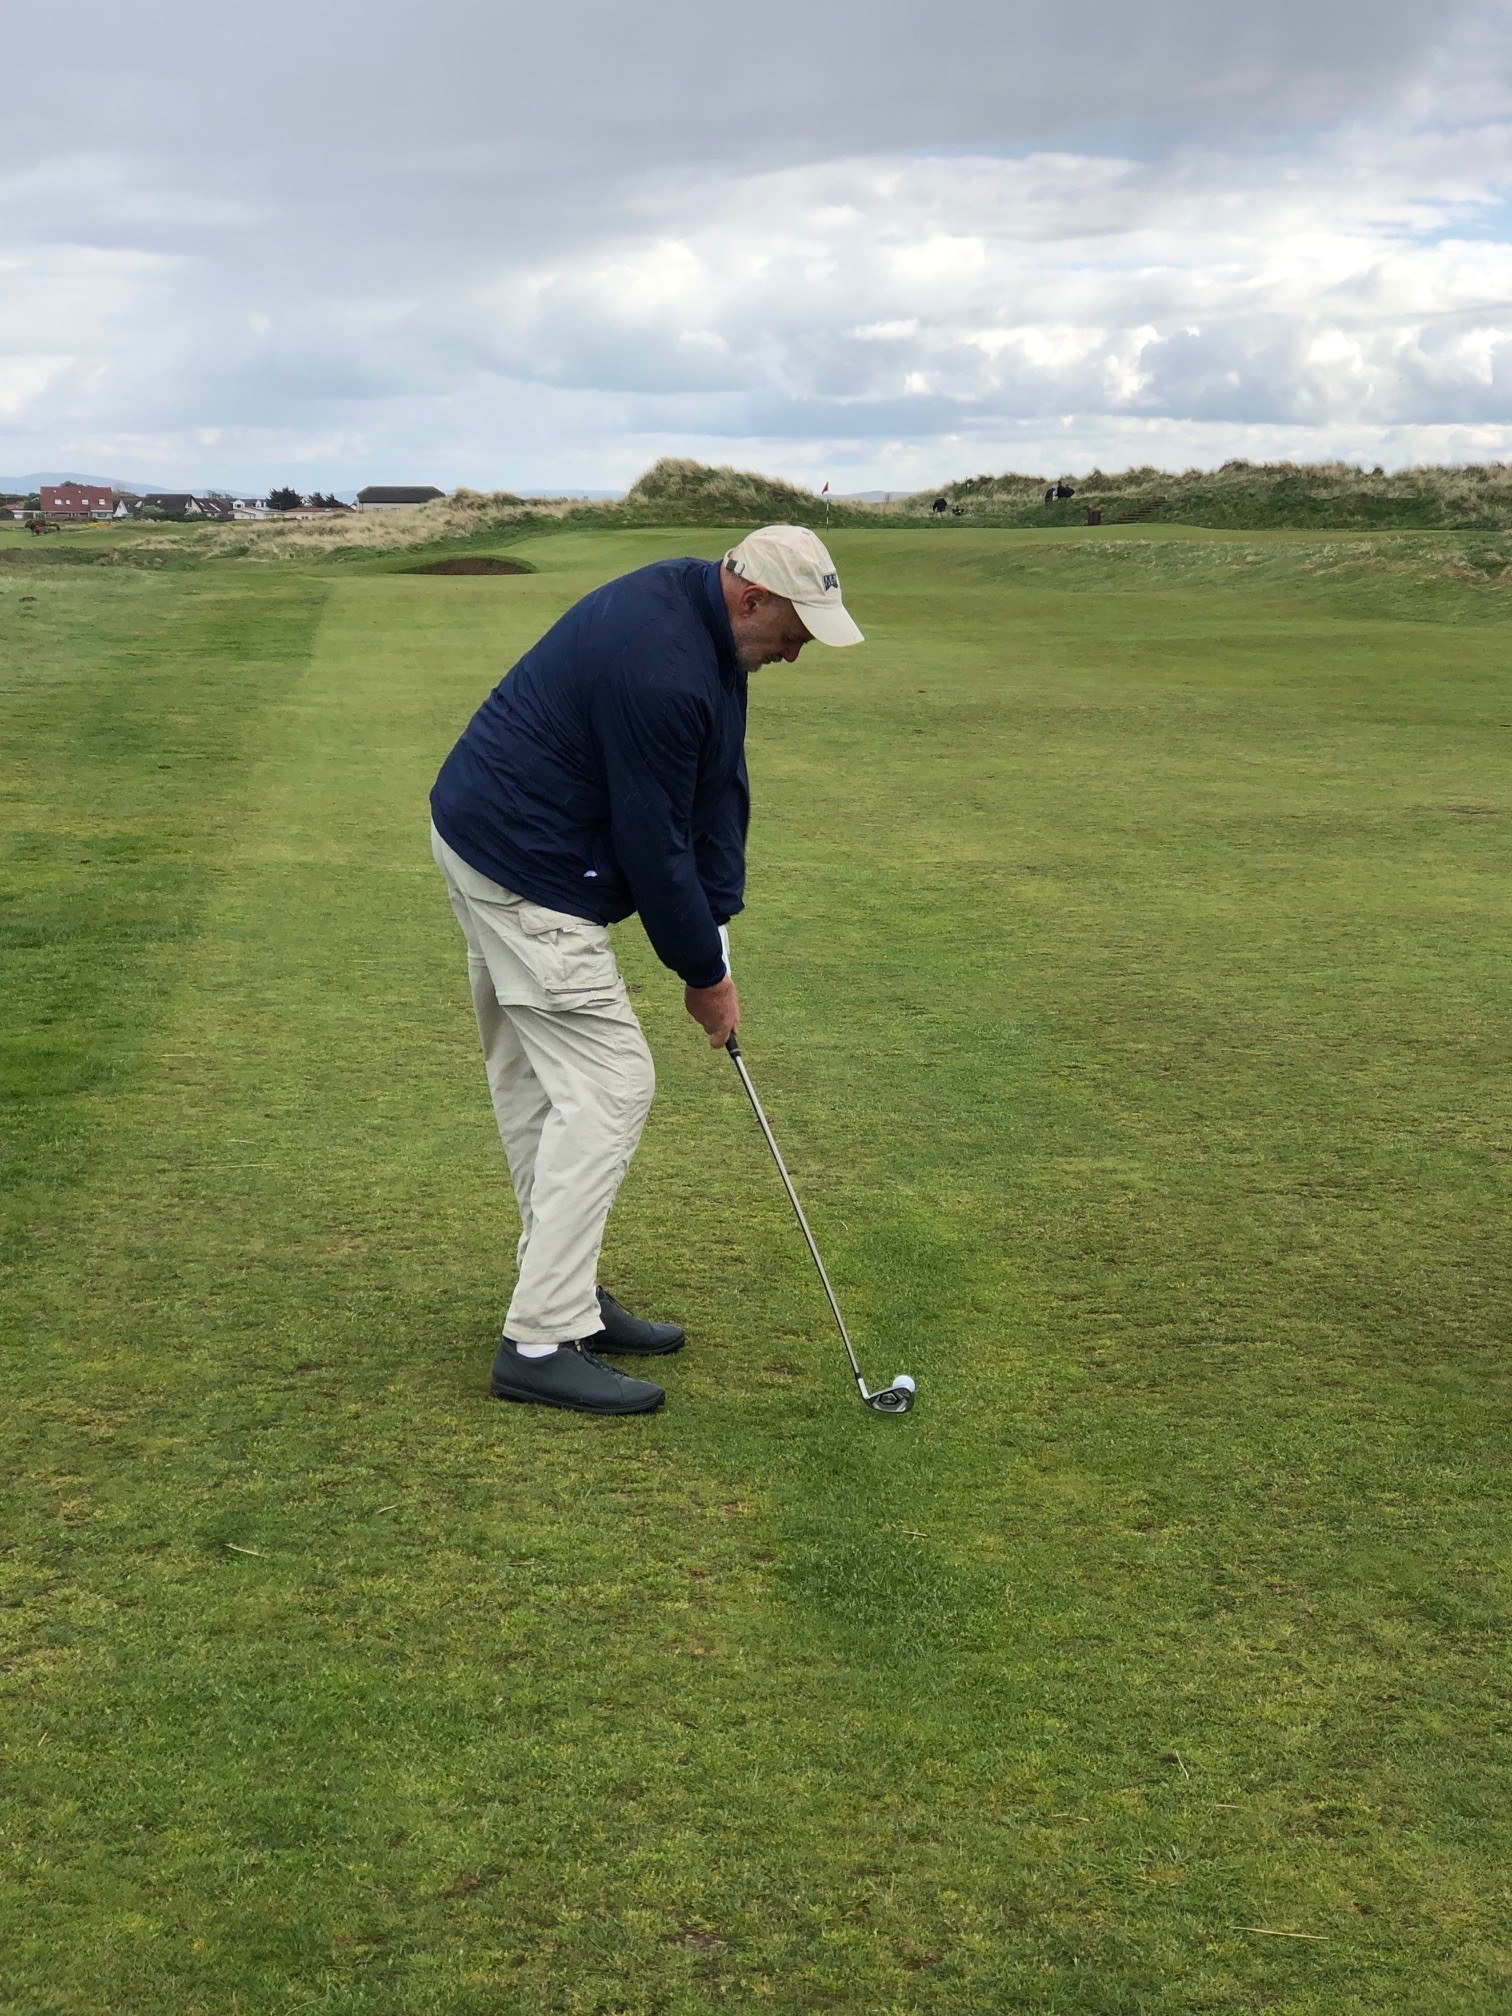 John R preparing to hit golf ball on fairway in Scotland